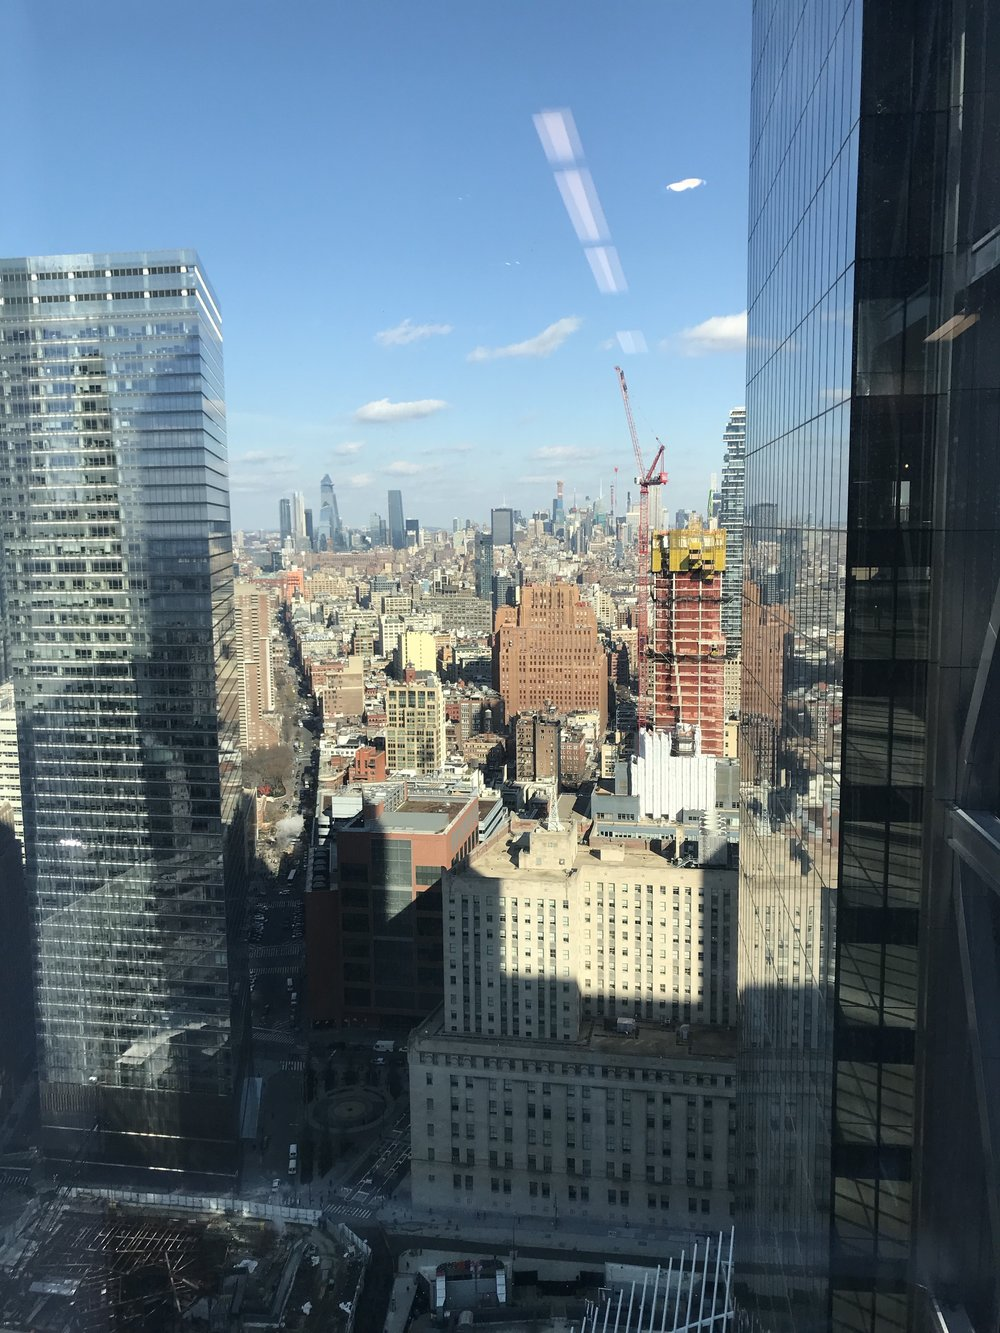 The view from 4 World Trade - the home of Spotify, where 300 people gathered for conversations about restorative justice